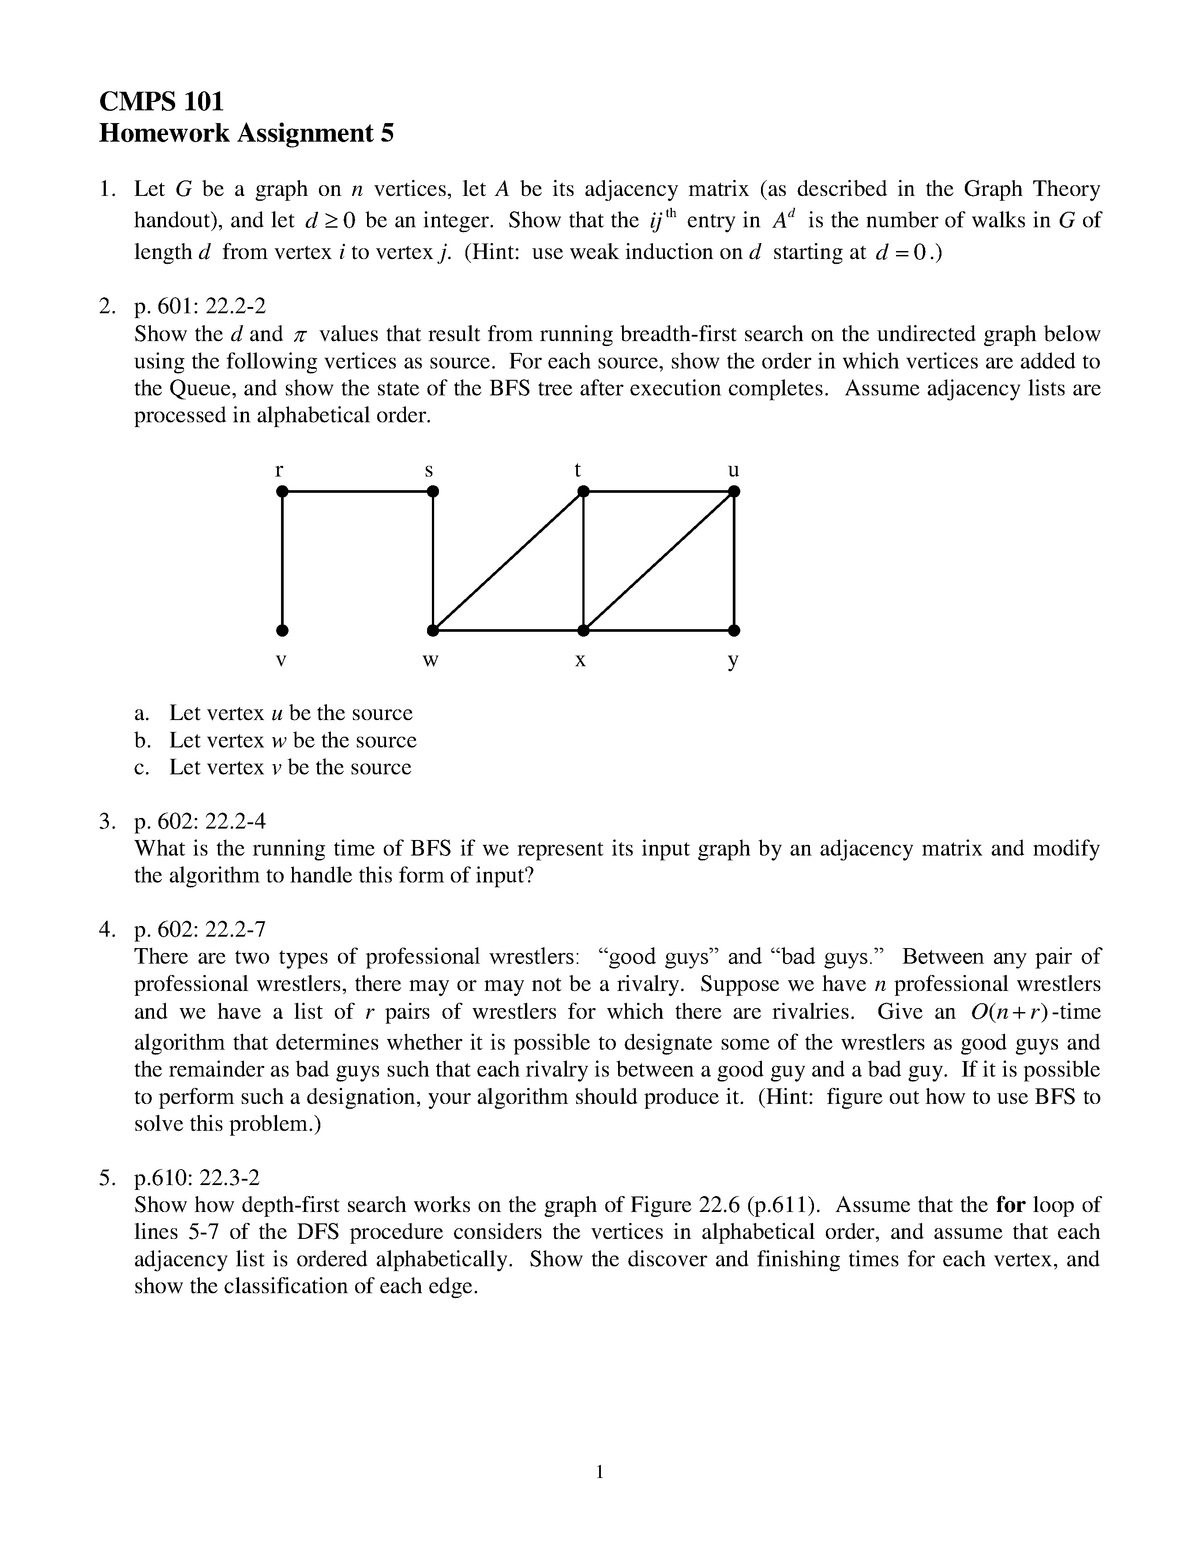 Hw5 - 5th homework assignment for CS 101 - CMPS 101: Abstract Data